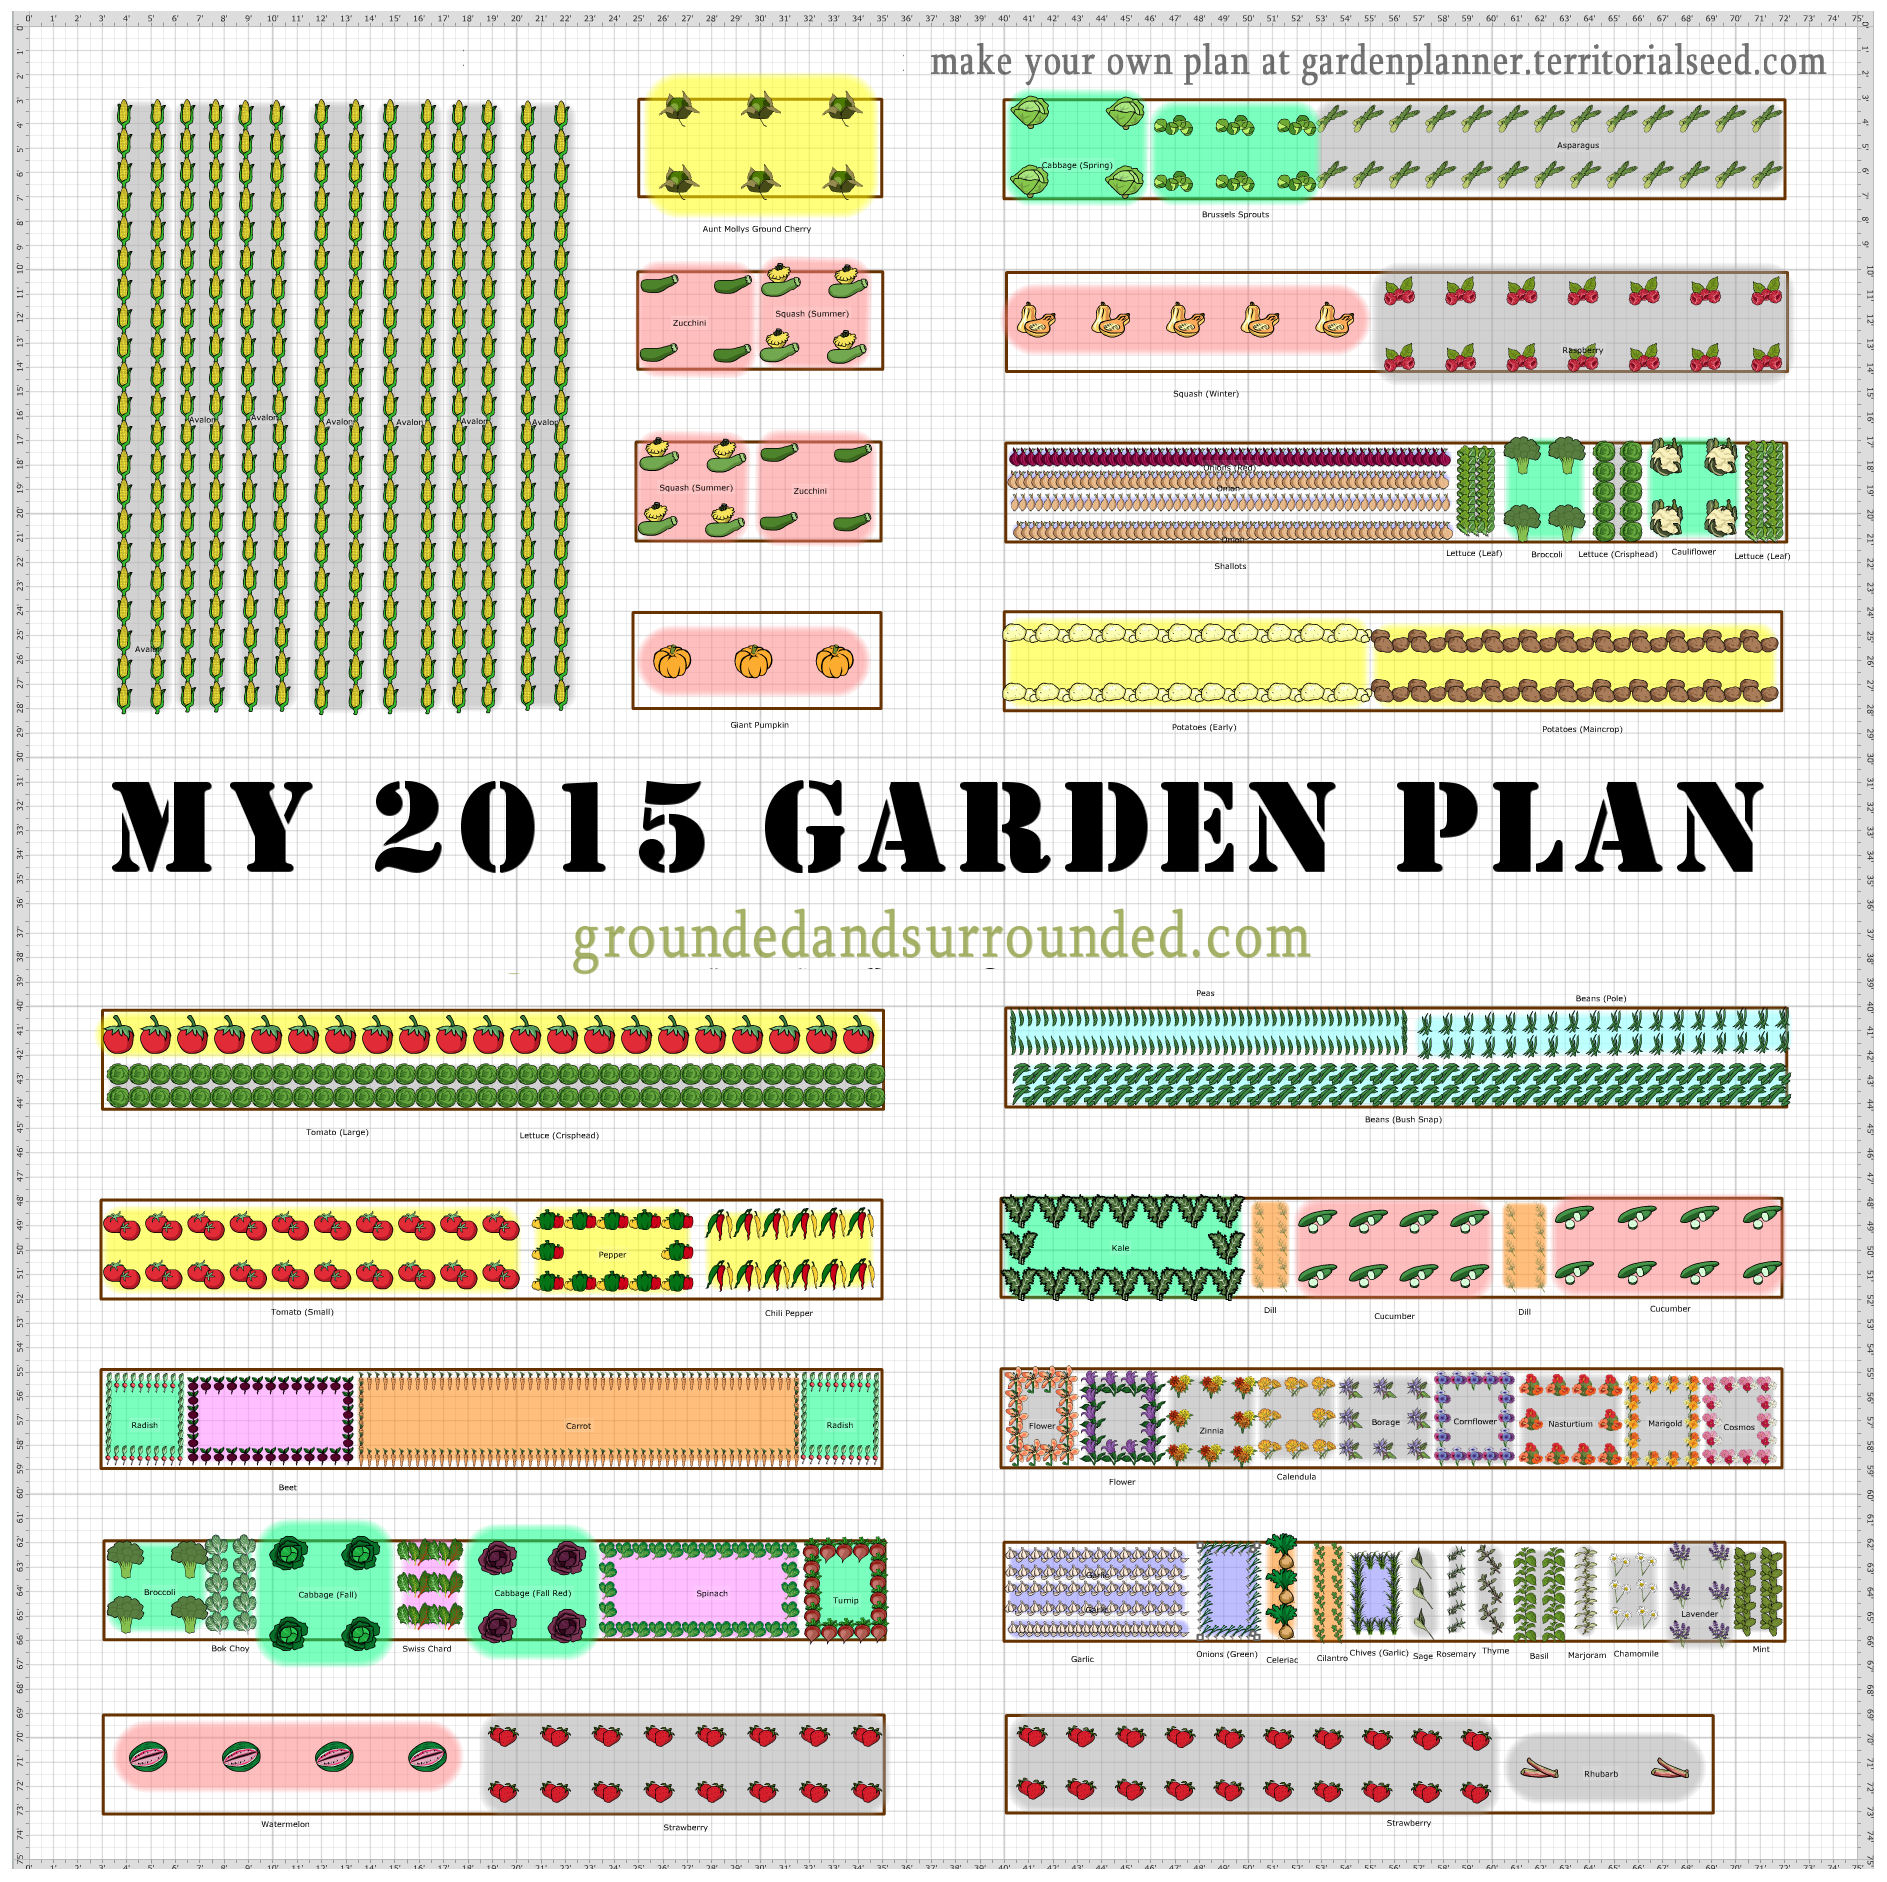 My 5 000 Sq Ft Vegetable Garden Plan Grounded & Surrounded